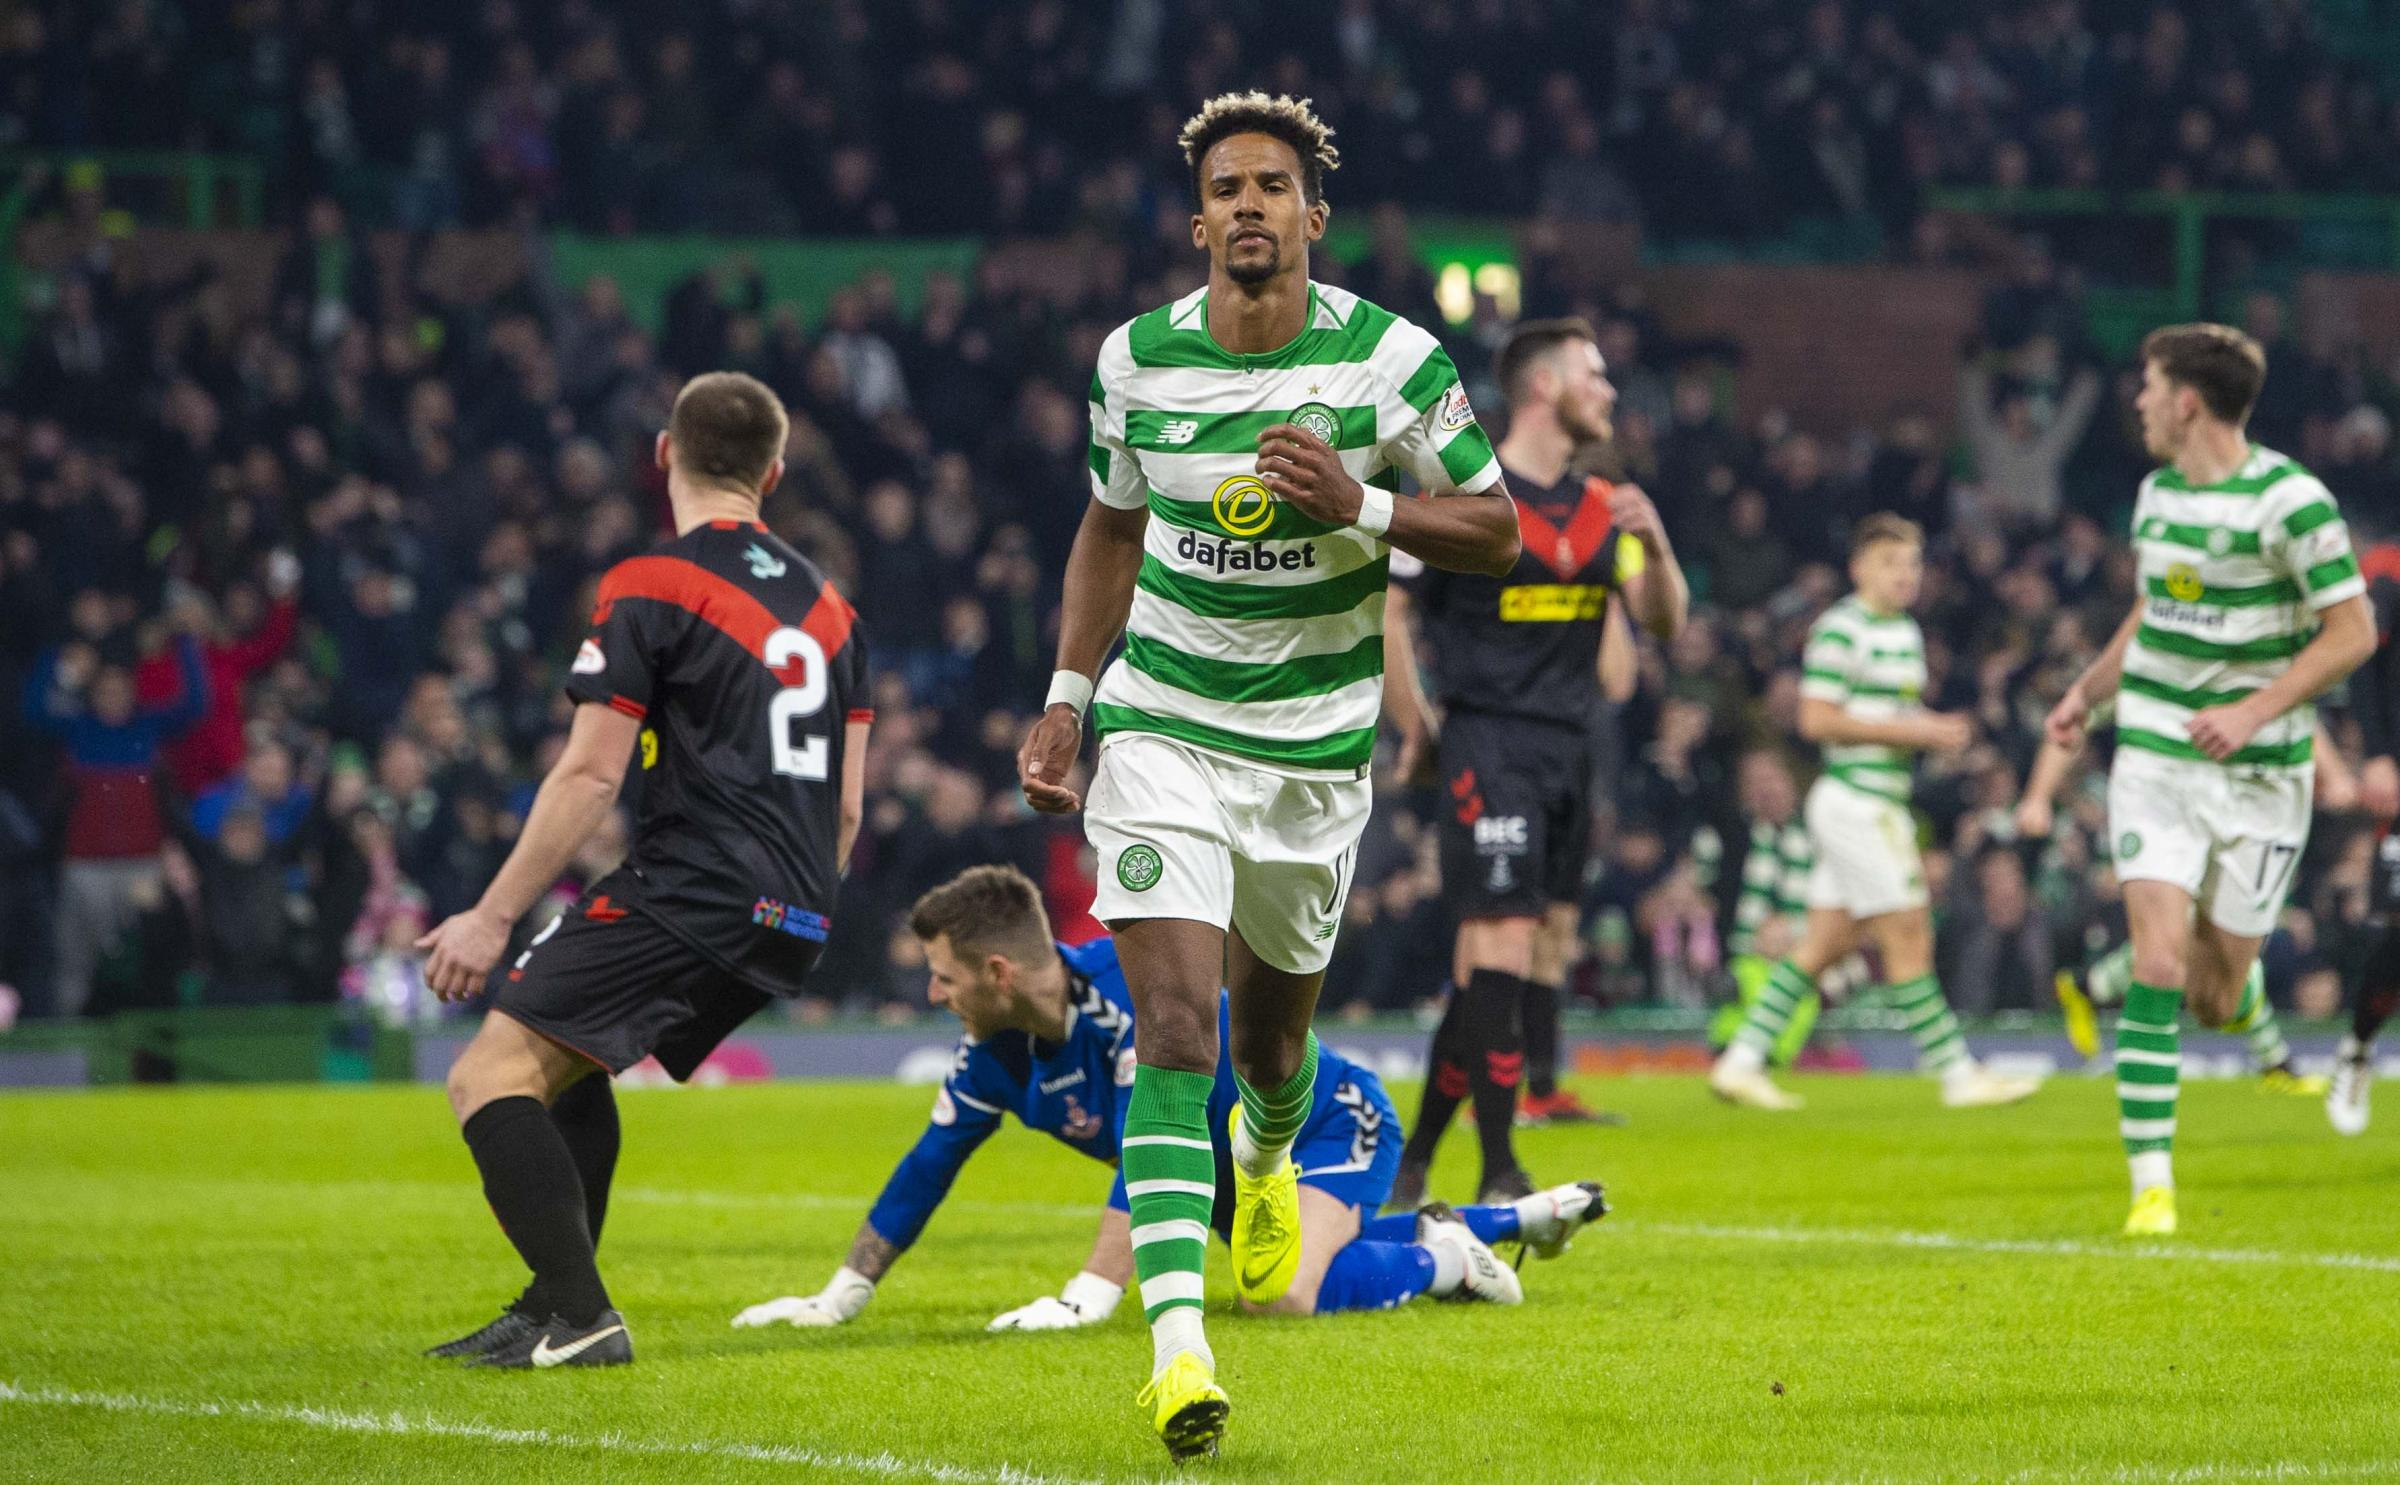 Celtic's Scott Sinclair was on the score sheet this weekend